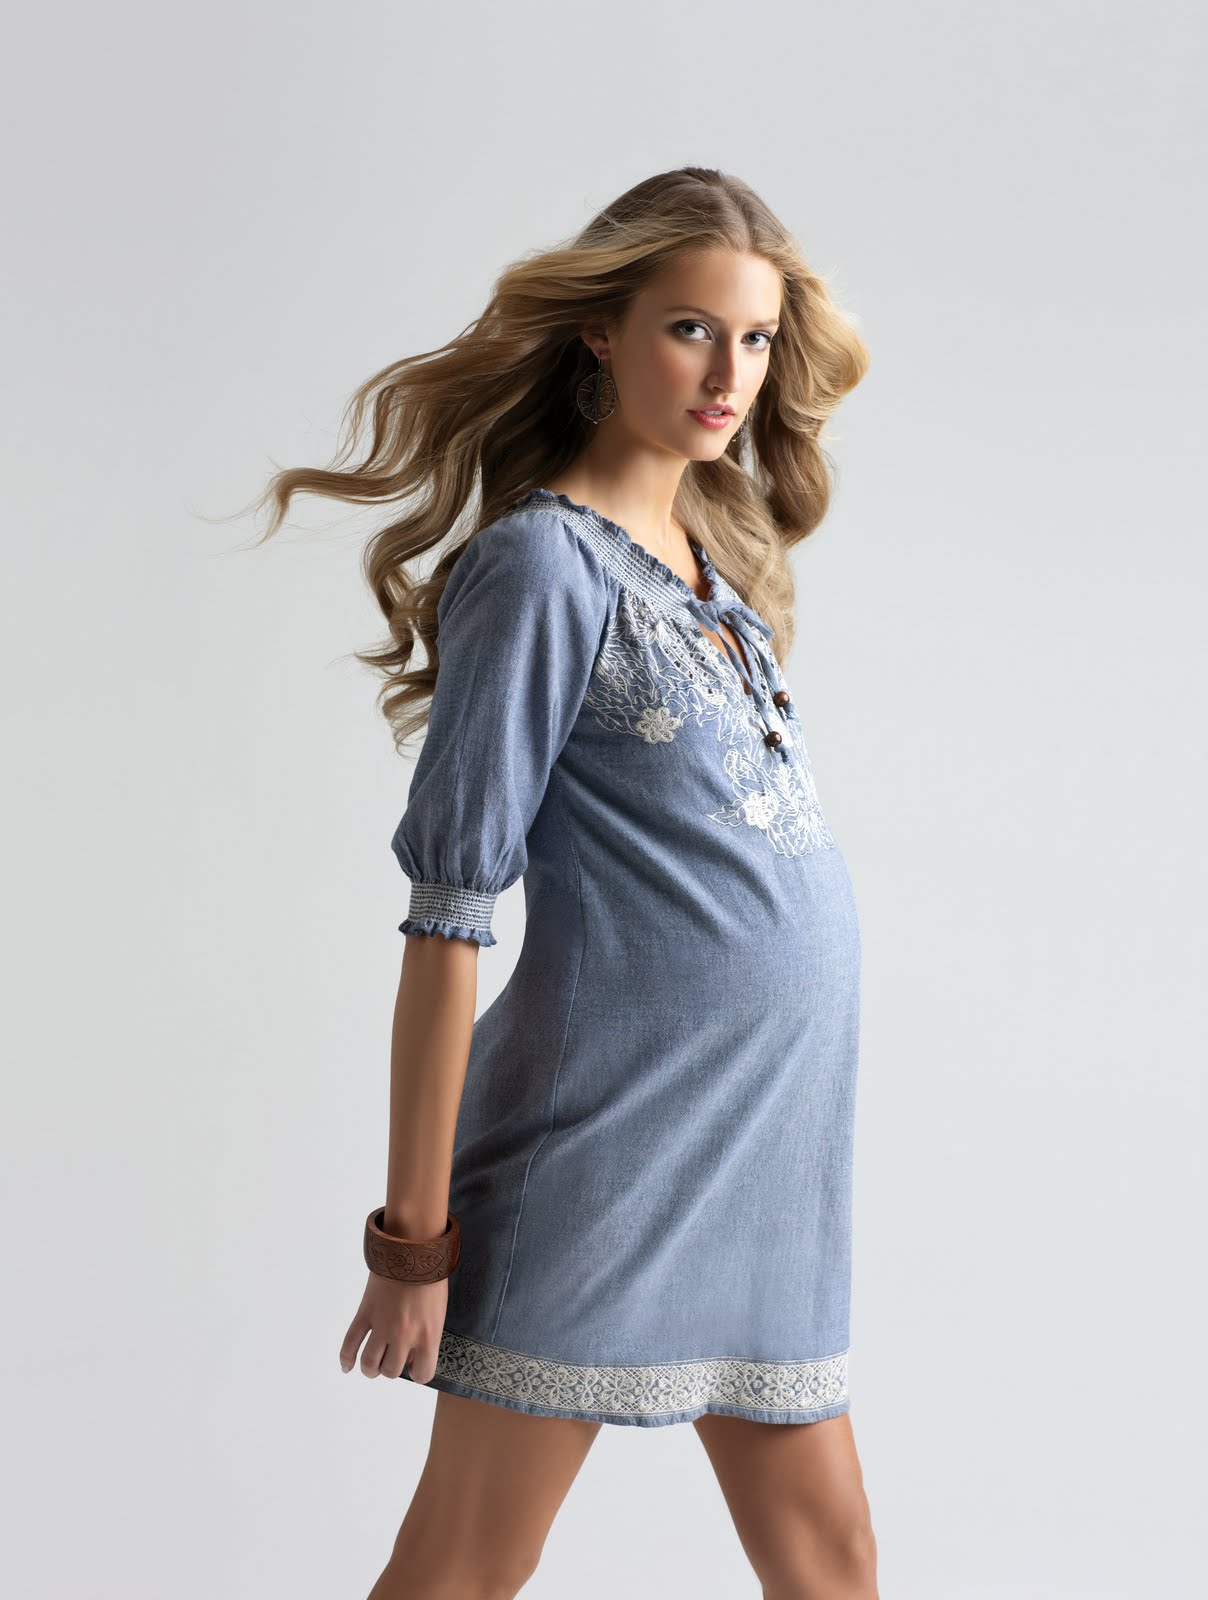 ... You Choose the Best Summer Maternity Clothes | Women Lifestyles Blog